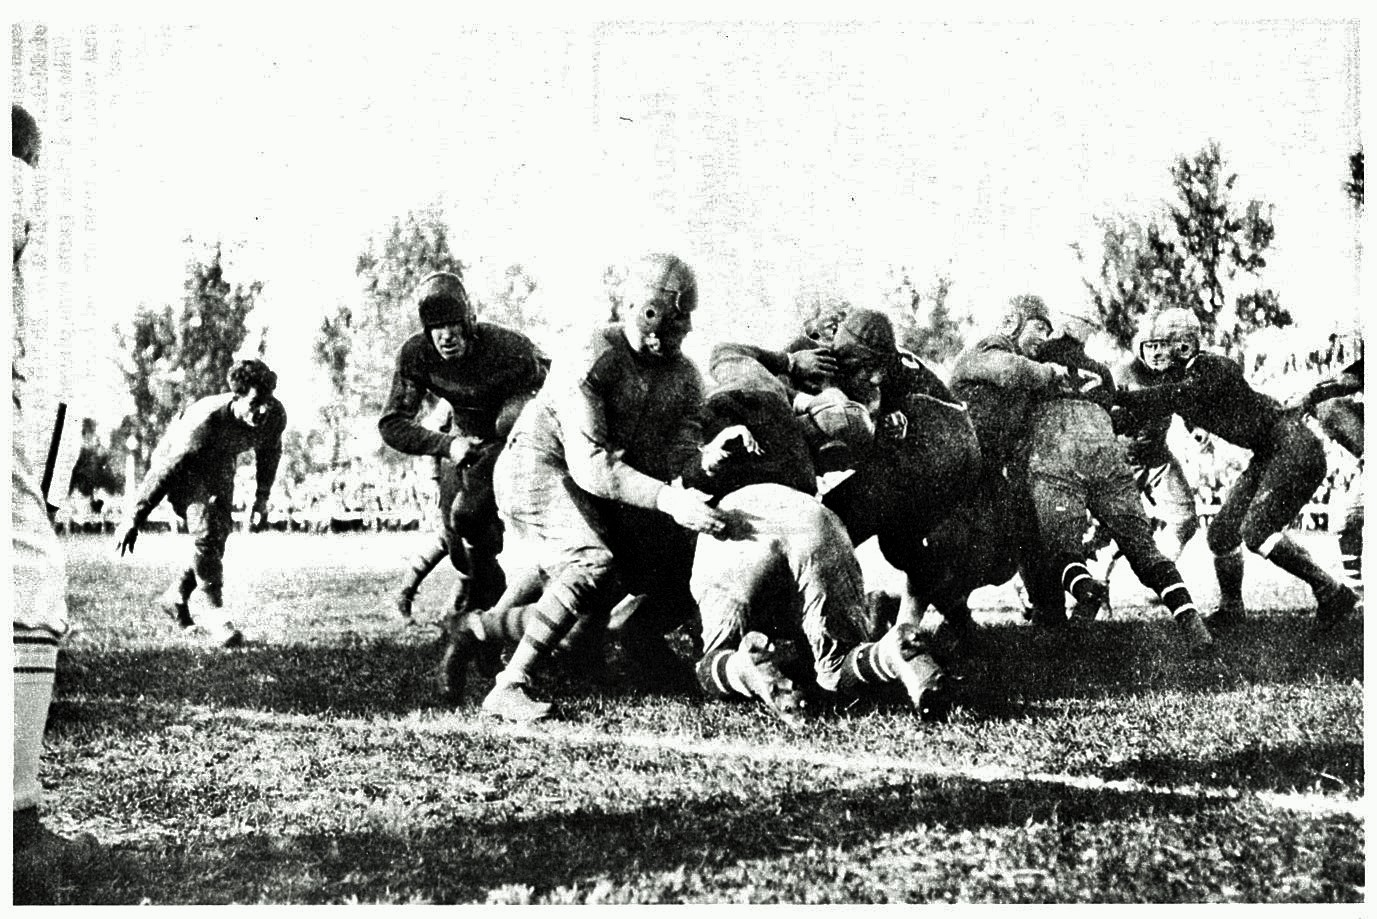 New York Giants at Green Bay Packers (October 7, 1928)